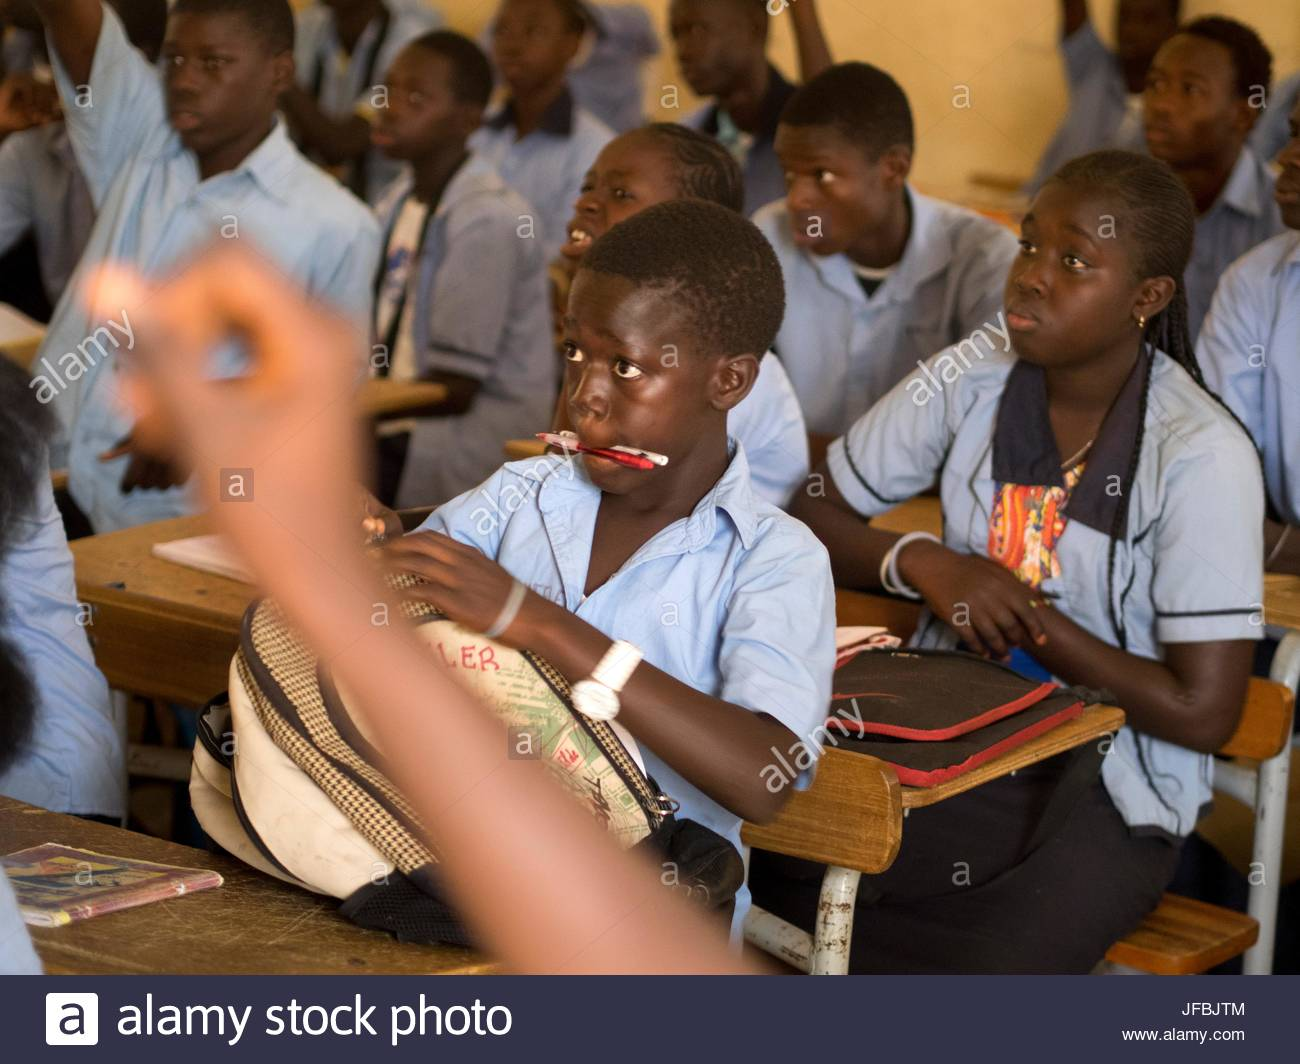 14 year old students in a classroom at their desks. - Stock Image